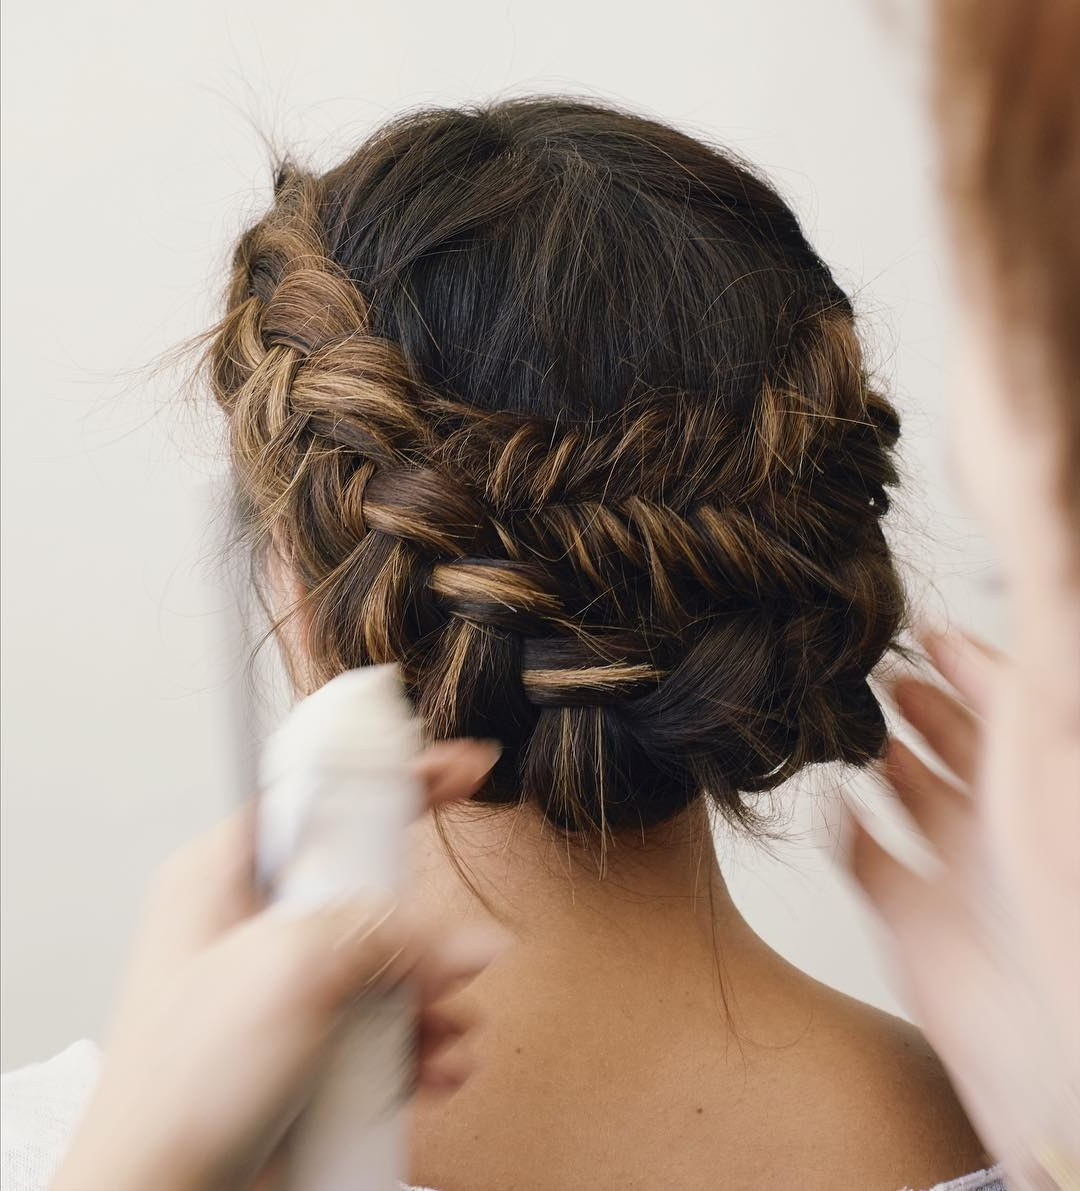 Best And Newest Sleek And Voluminous Beehive Bridal Hairstyles Pertaining To 61 Braided Wedding Hairstyles (View 14 of 20)